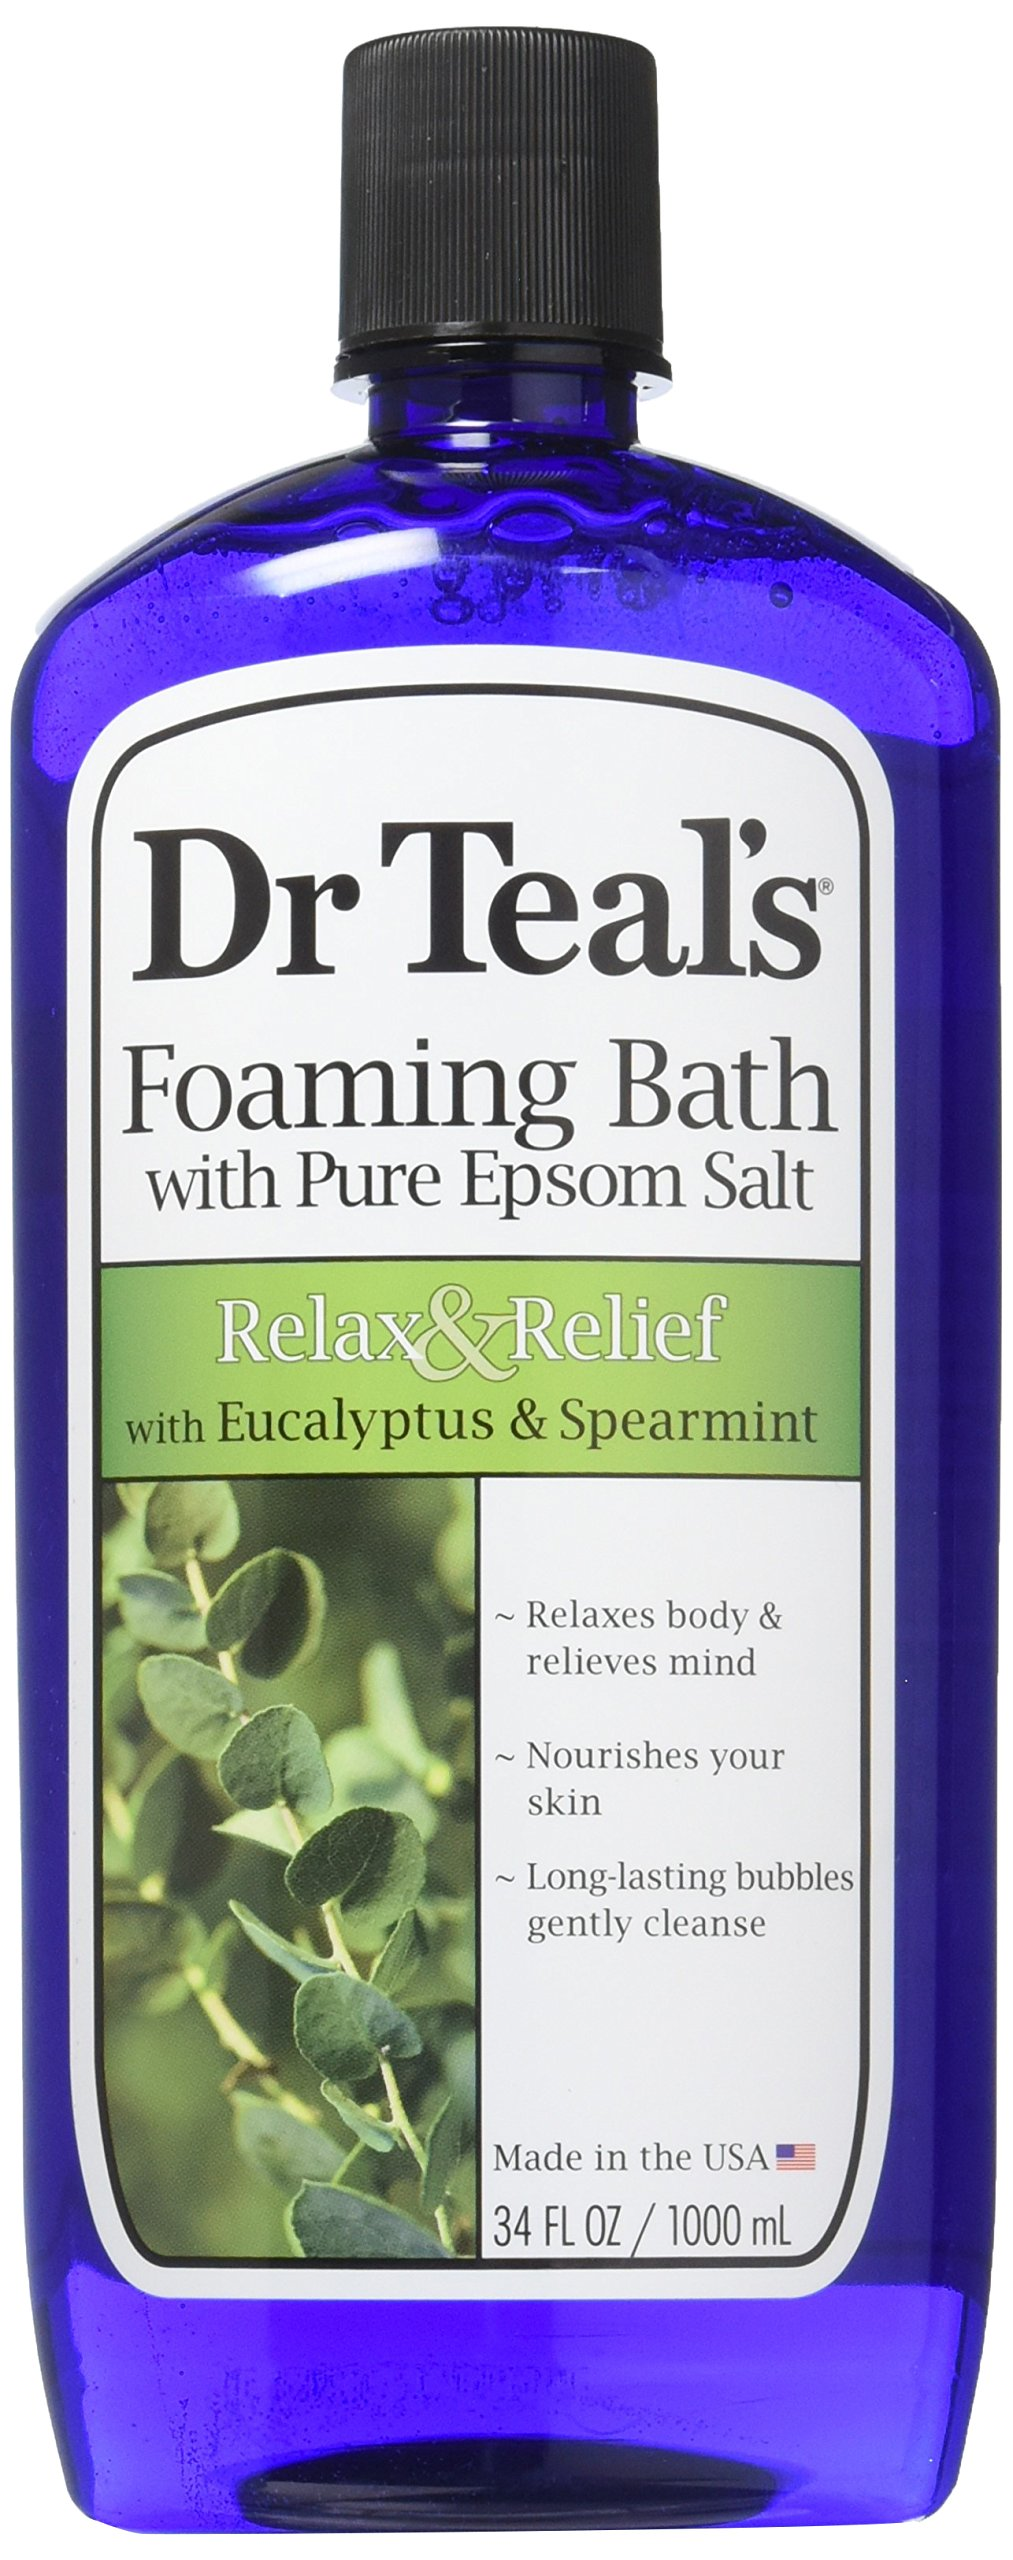 Dr Teal's Pure Epsom Salt Foaming Bath to Relax and Relief with Eucalyptus and Spearmint, 1 Litre